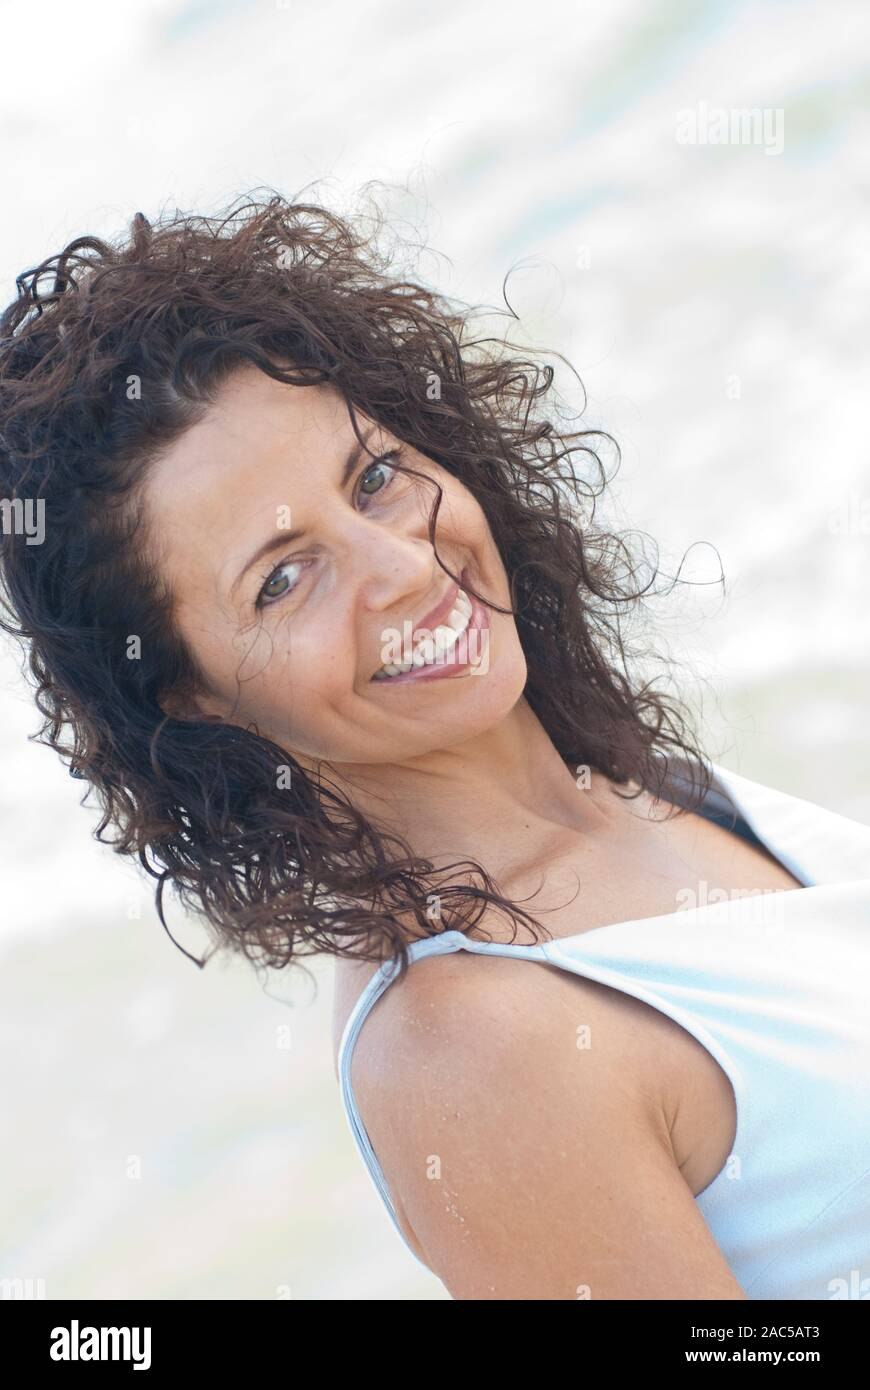 Portrait taken at Kailua beach of beautiful curly haired woman at age 50 wearing soft blue dress Stock Photo